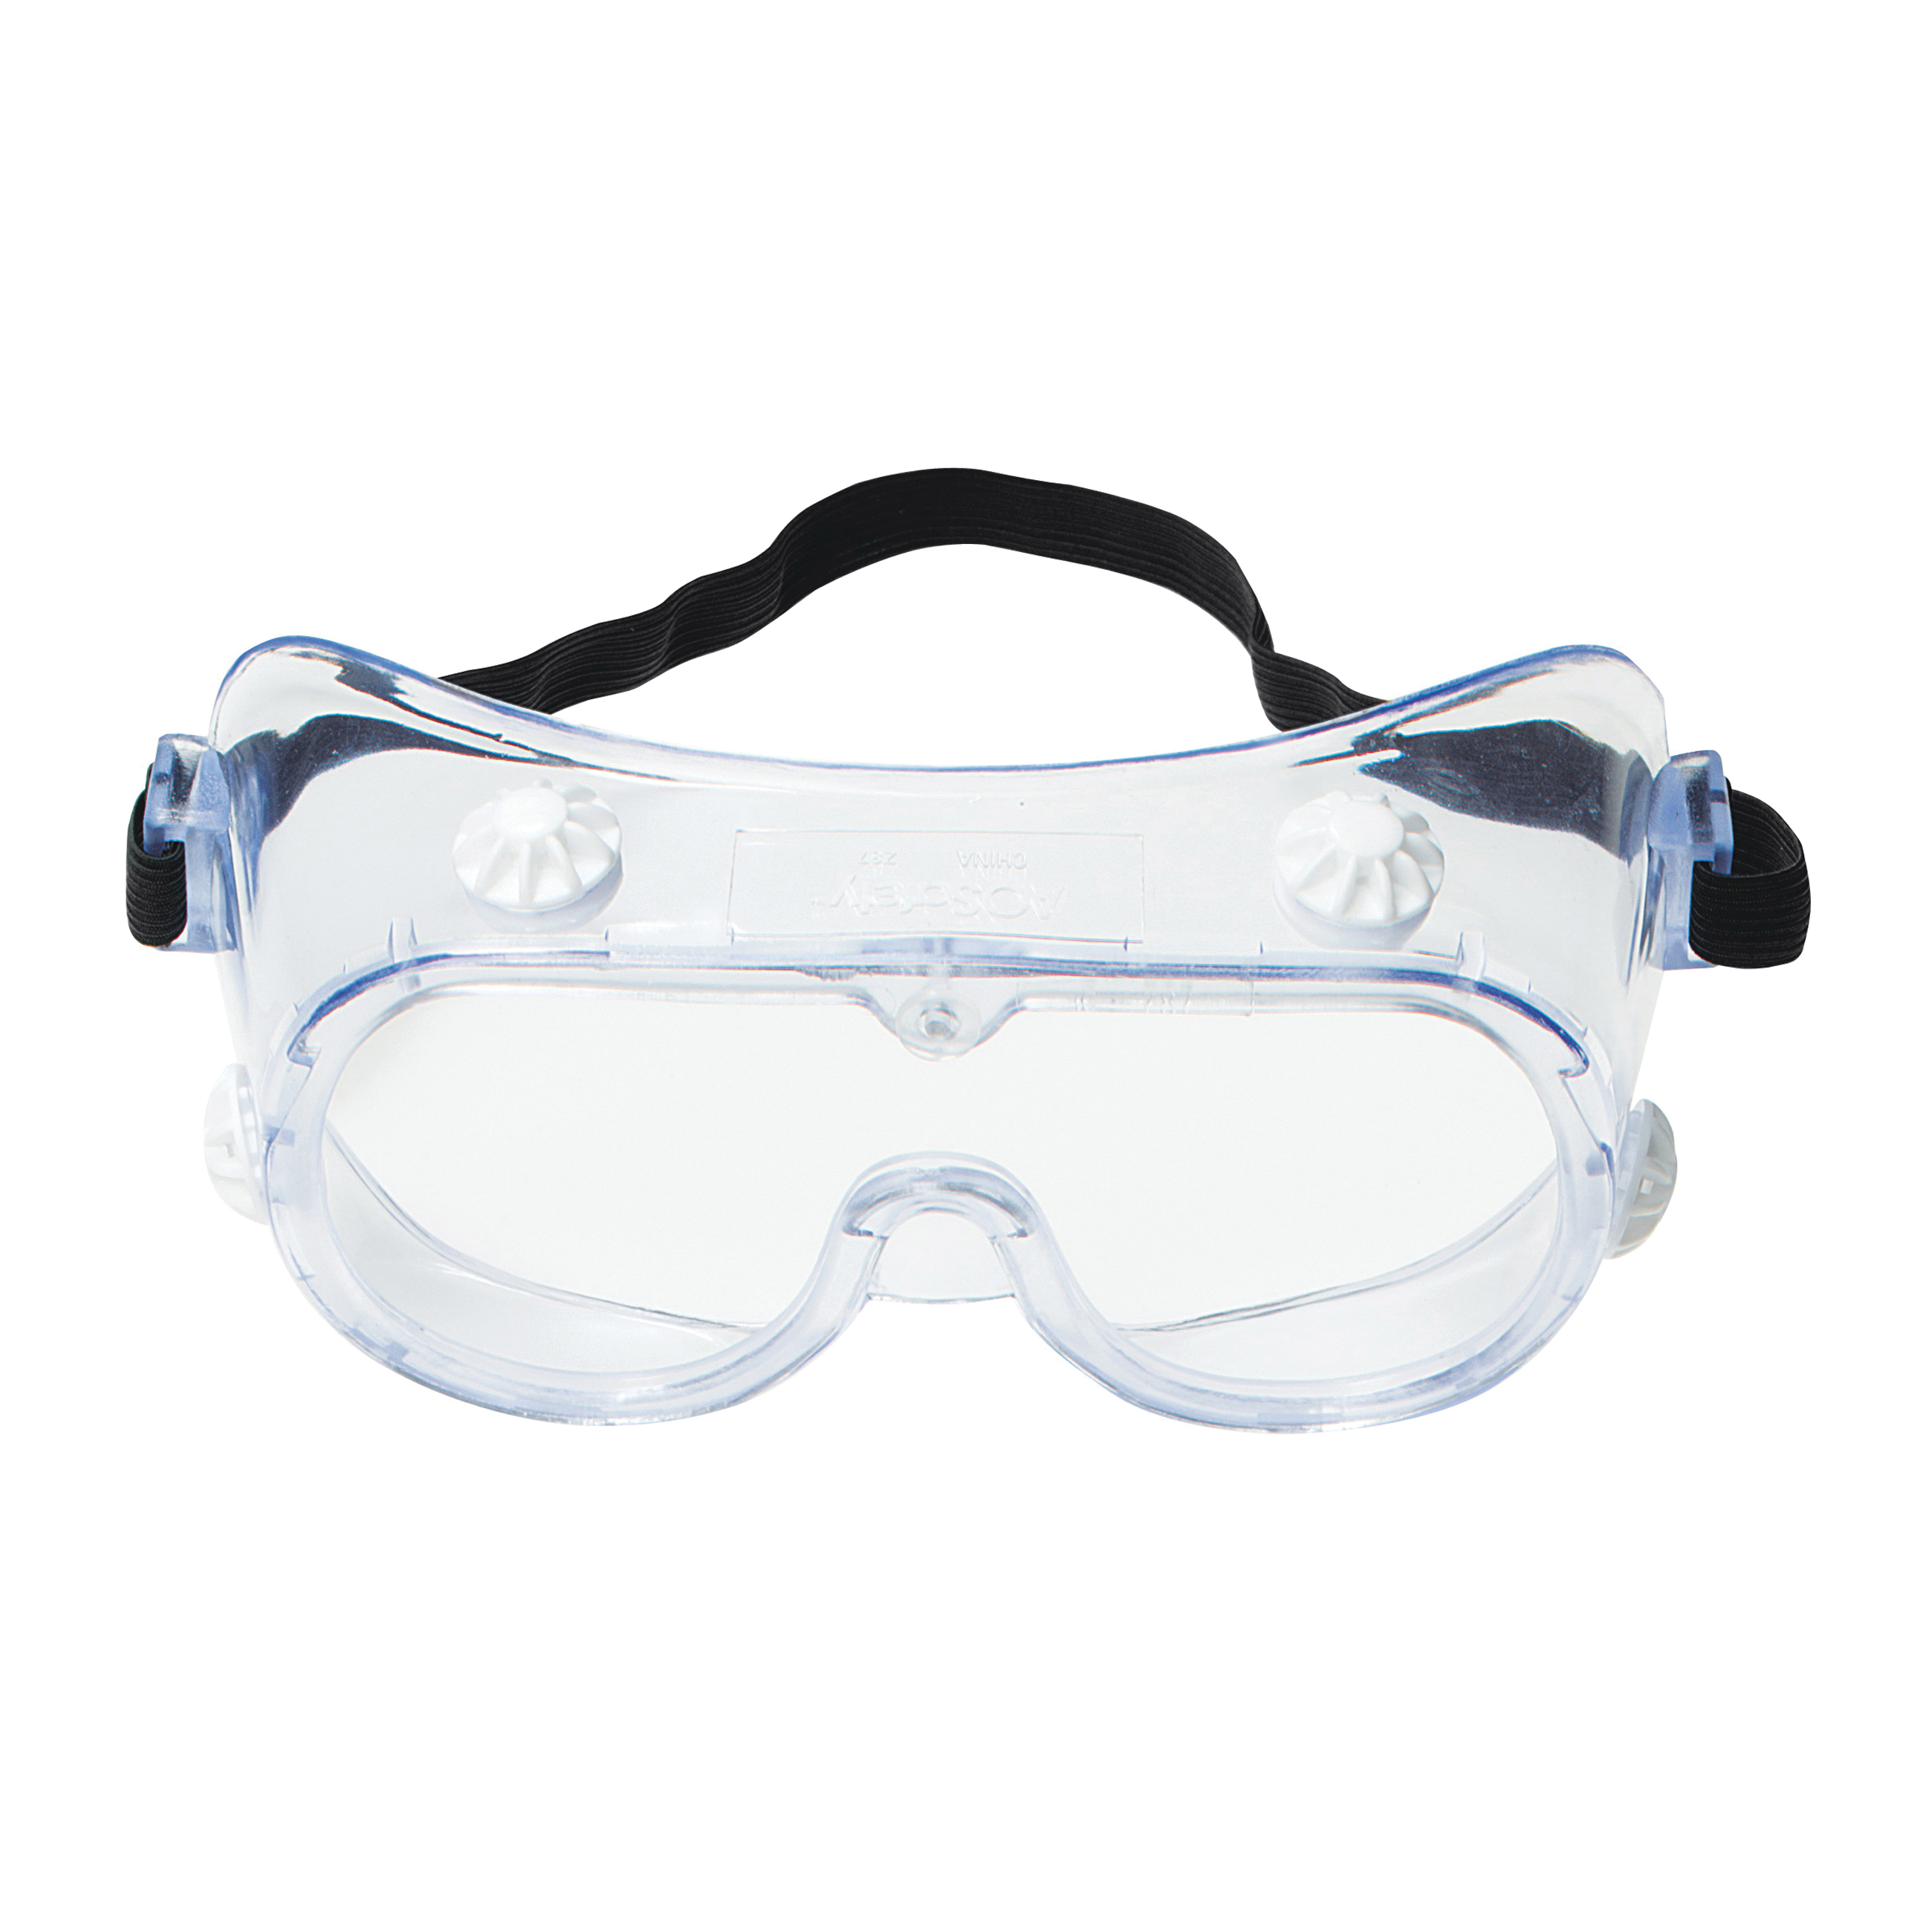 3M™ 078371-62139 40660-00000-10 Economy Indirect Vent Standard Safety Goggles, Uncoated Clear Polycarbonate Lens, 99.9% % UV Protection, Elastic Strap, Specifications Met: ANSI Z87.1-2003